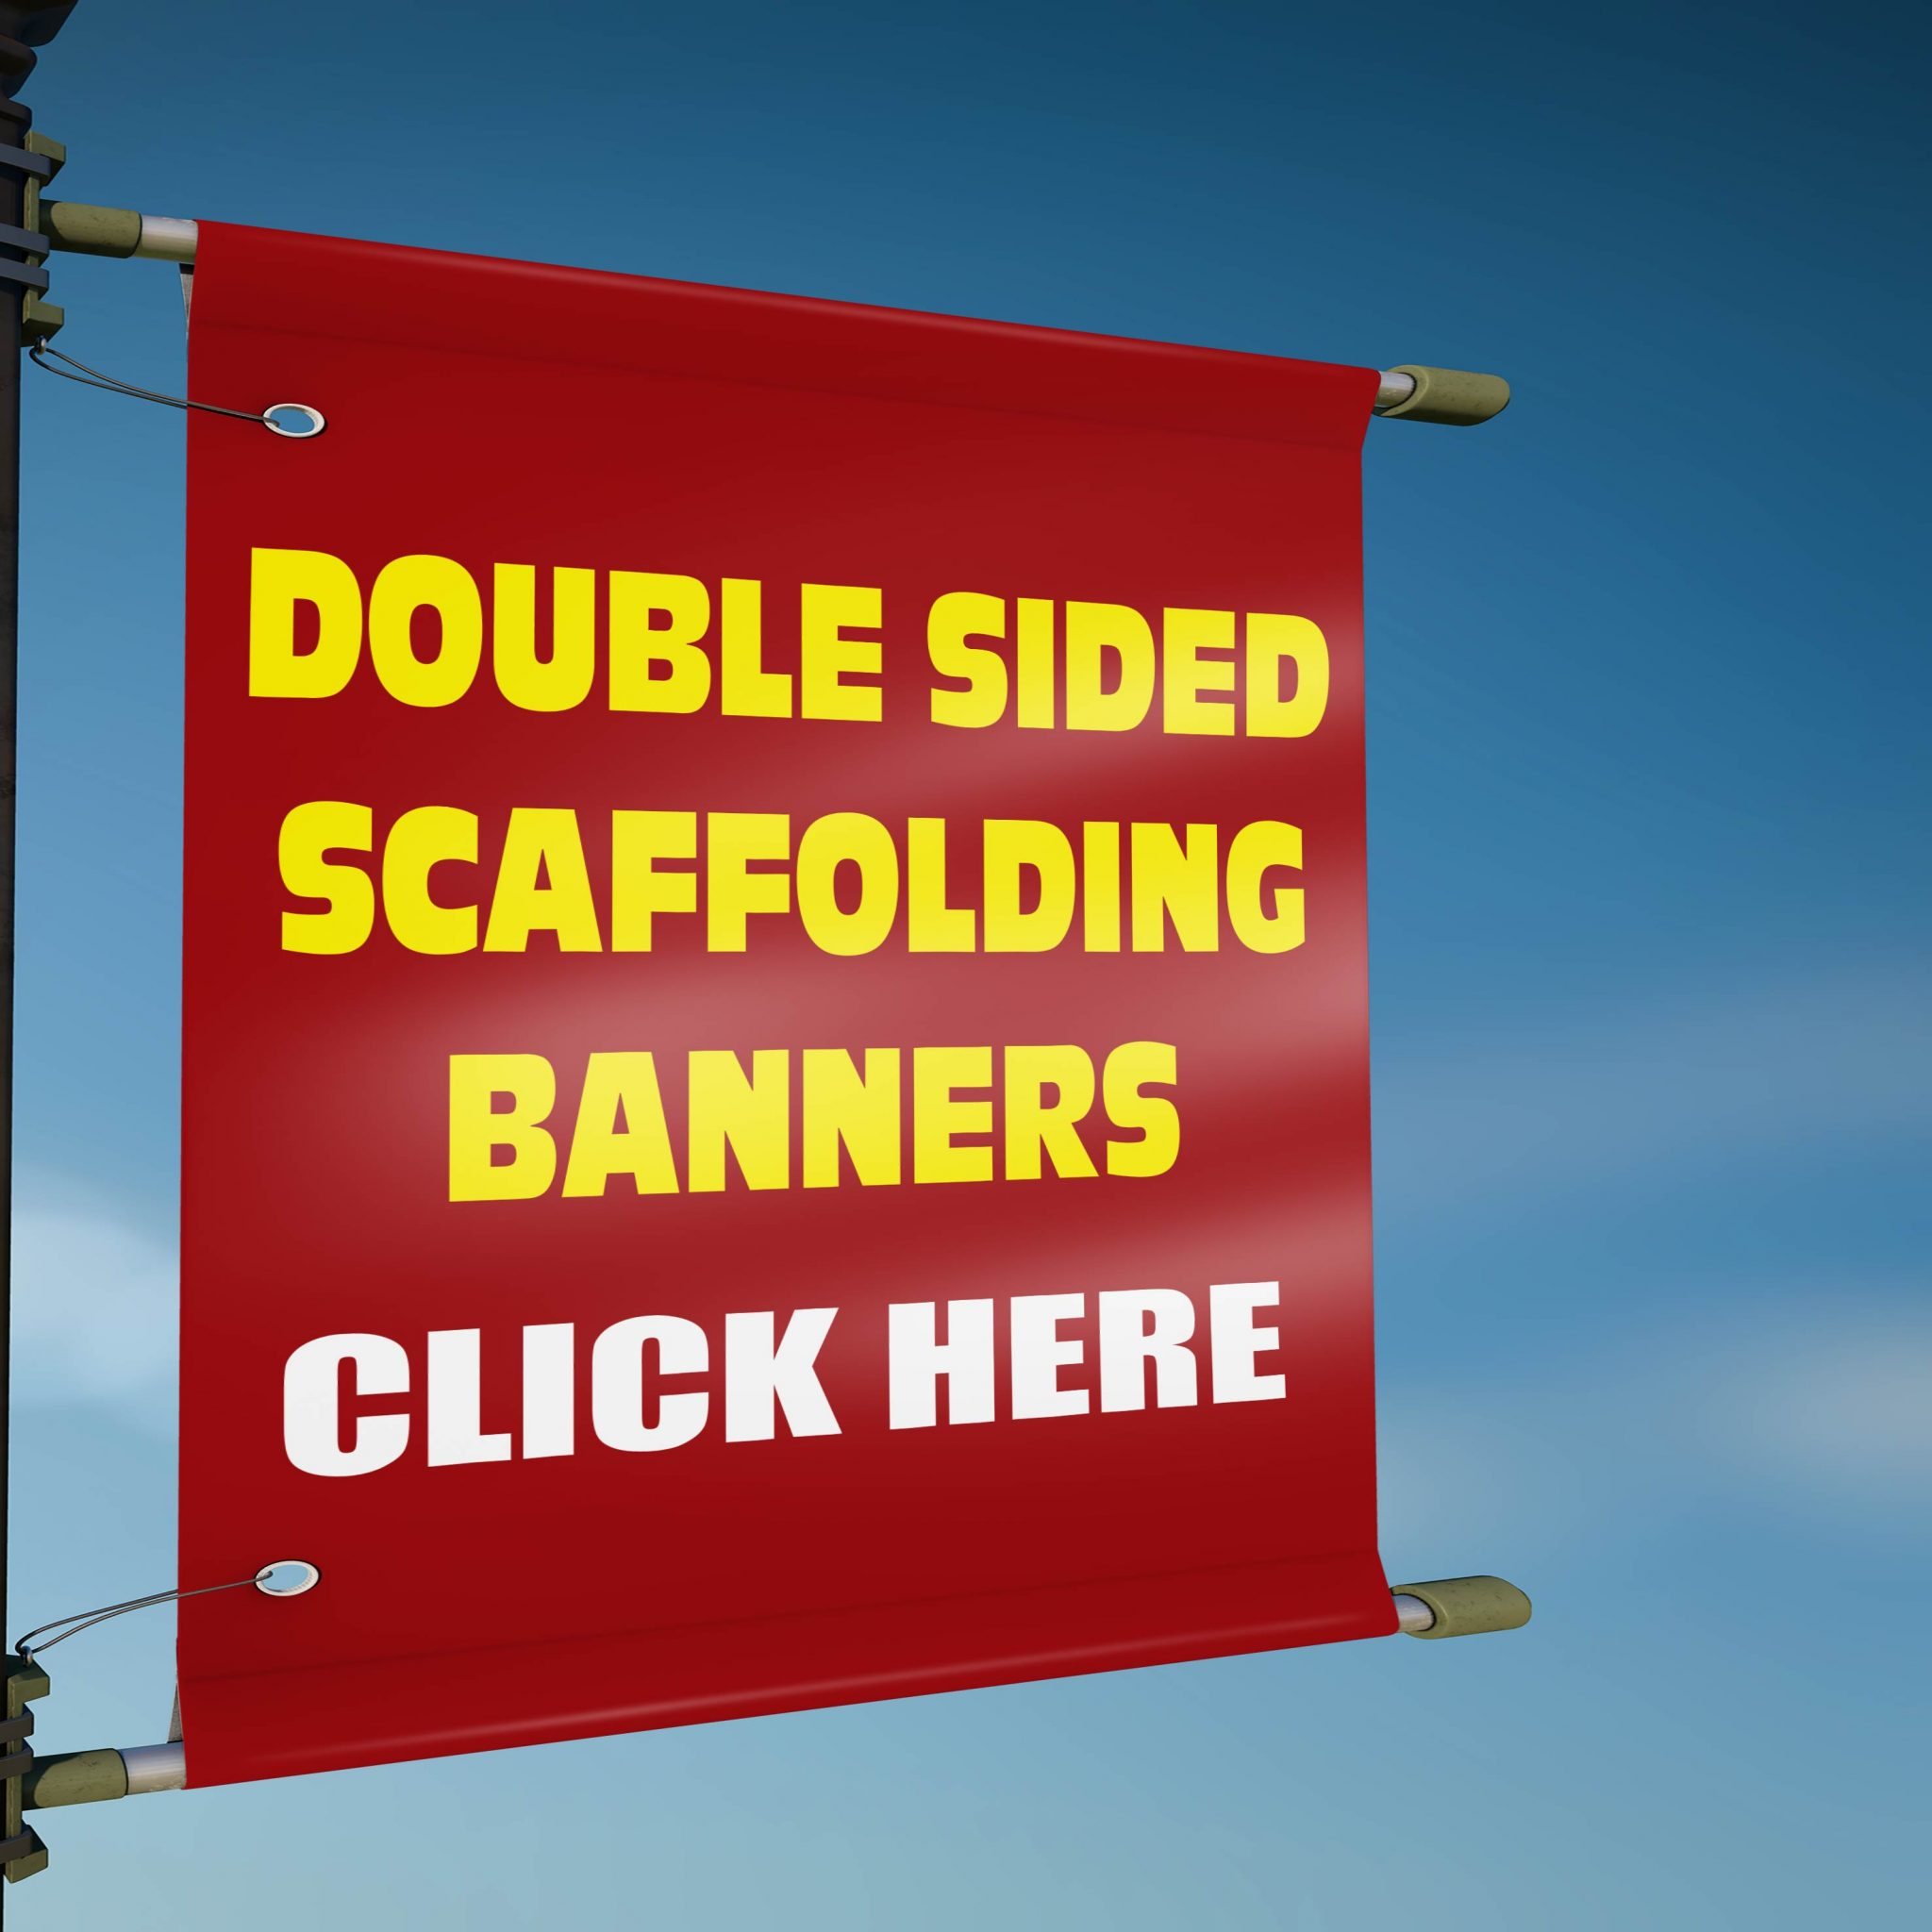 Double Sided Scaffolding Banners